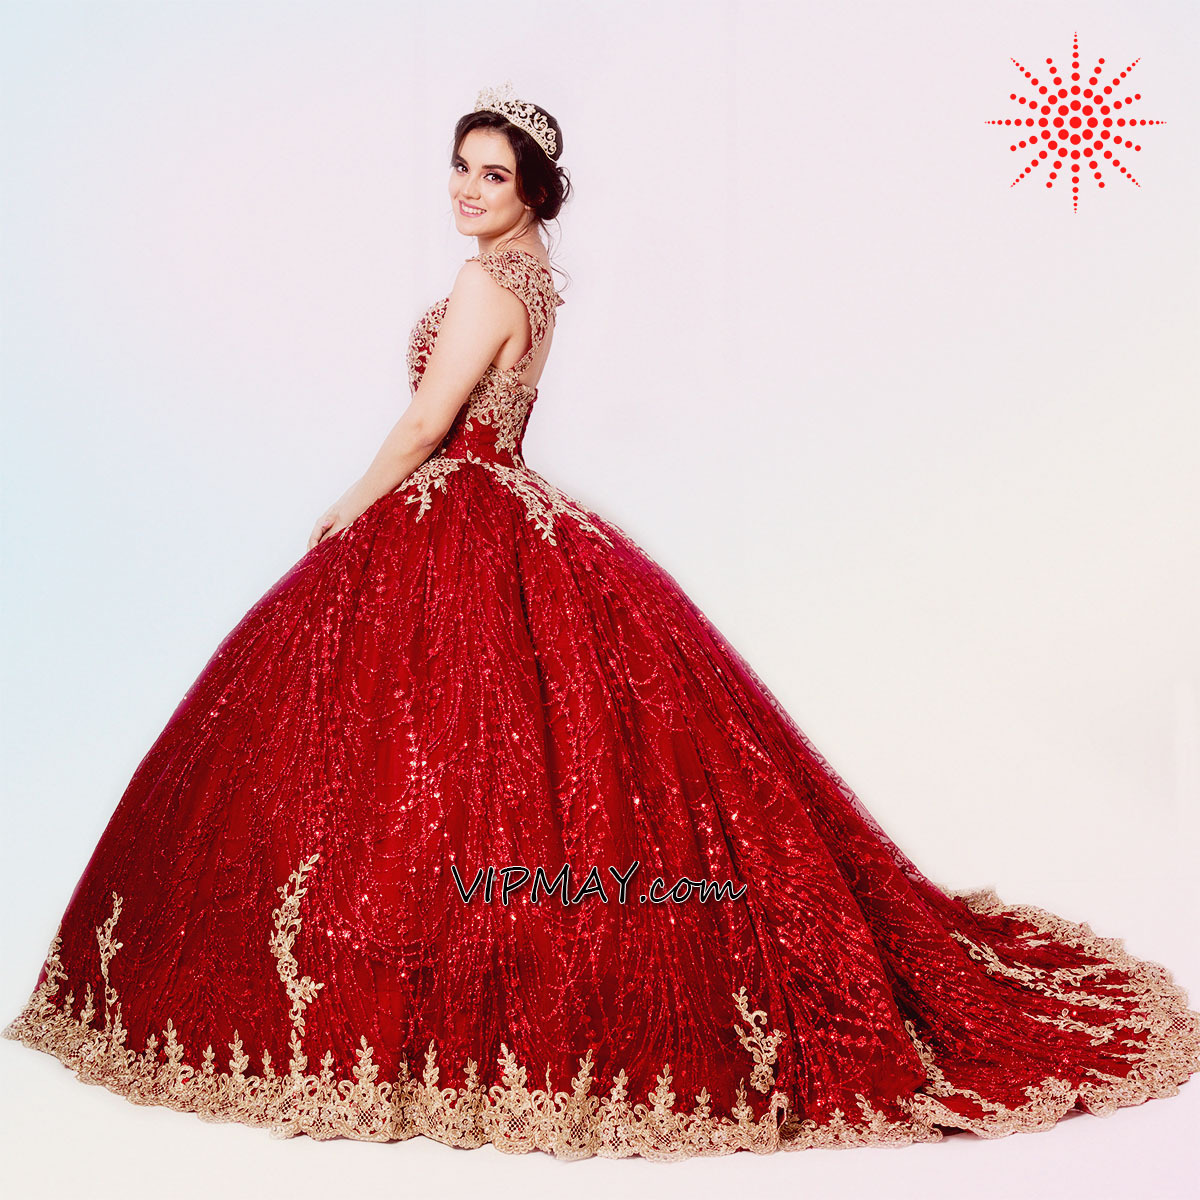 red and gold quinceanera dress,red sweet 16 dress,red quineanera dress,glitter tulle quinceanera dress,online cheap quinceanera dress,cheap quinceanera dress for sale,cheap beautiful quinceanera dress,quinceanera dress wholesale los angeles,quinceanera dress wholesale price,cheap quinceanera gown under 200 dollars,